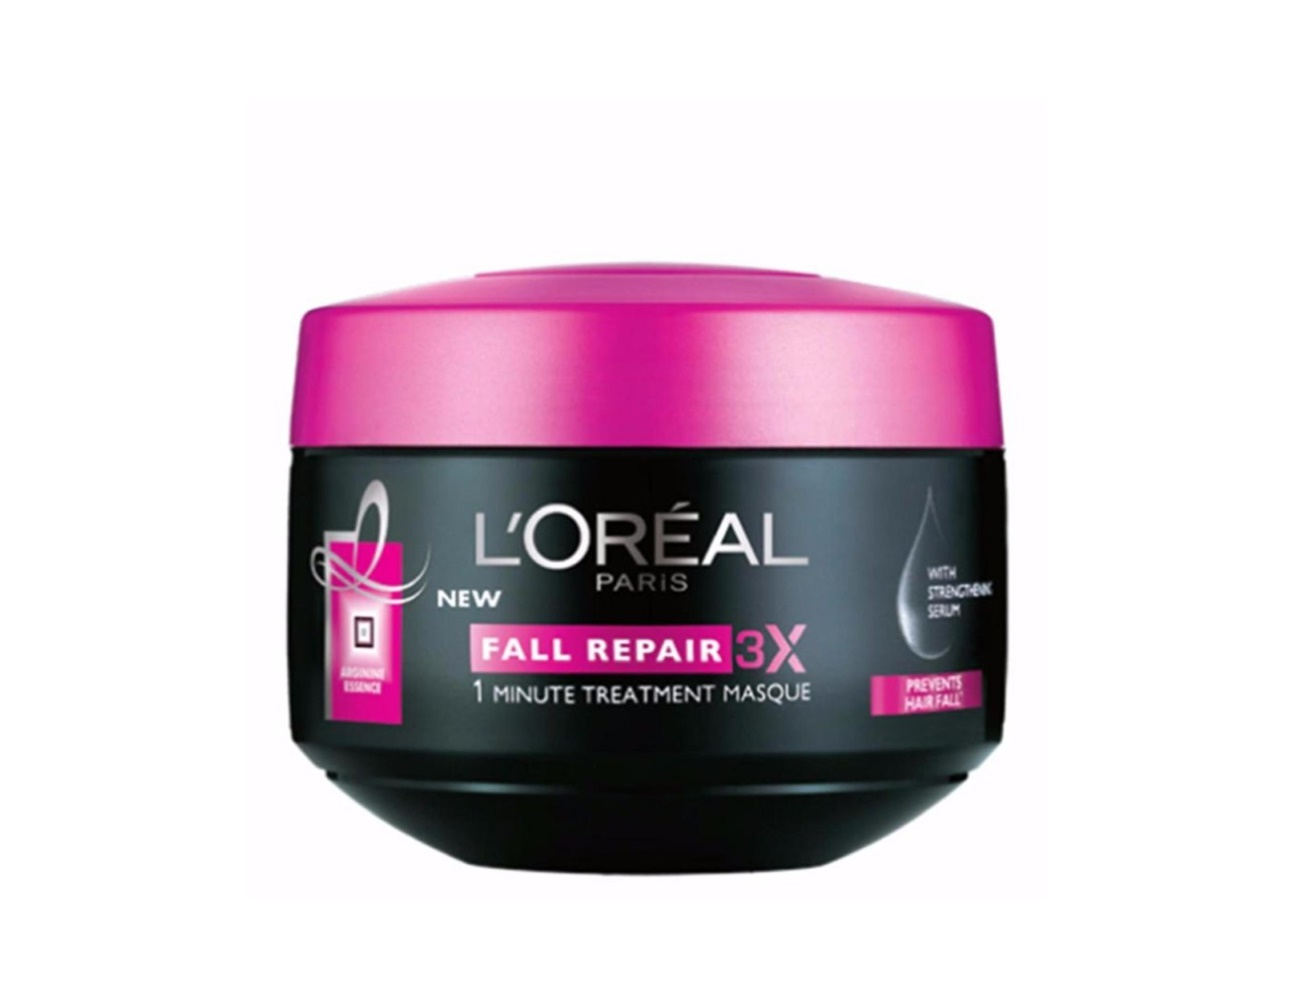 Fall Repair 3x 1 Minute Treatment Mask Fall Repair- L'Oréal